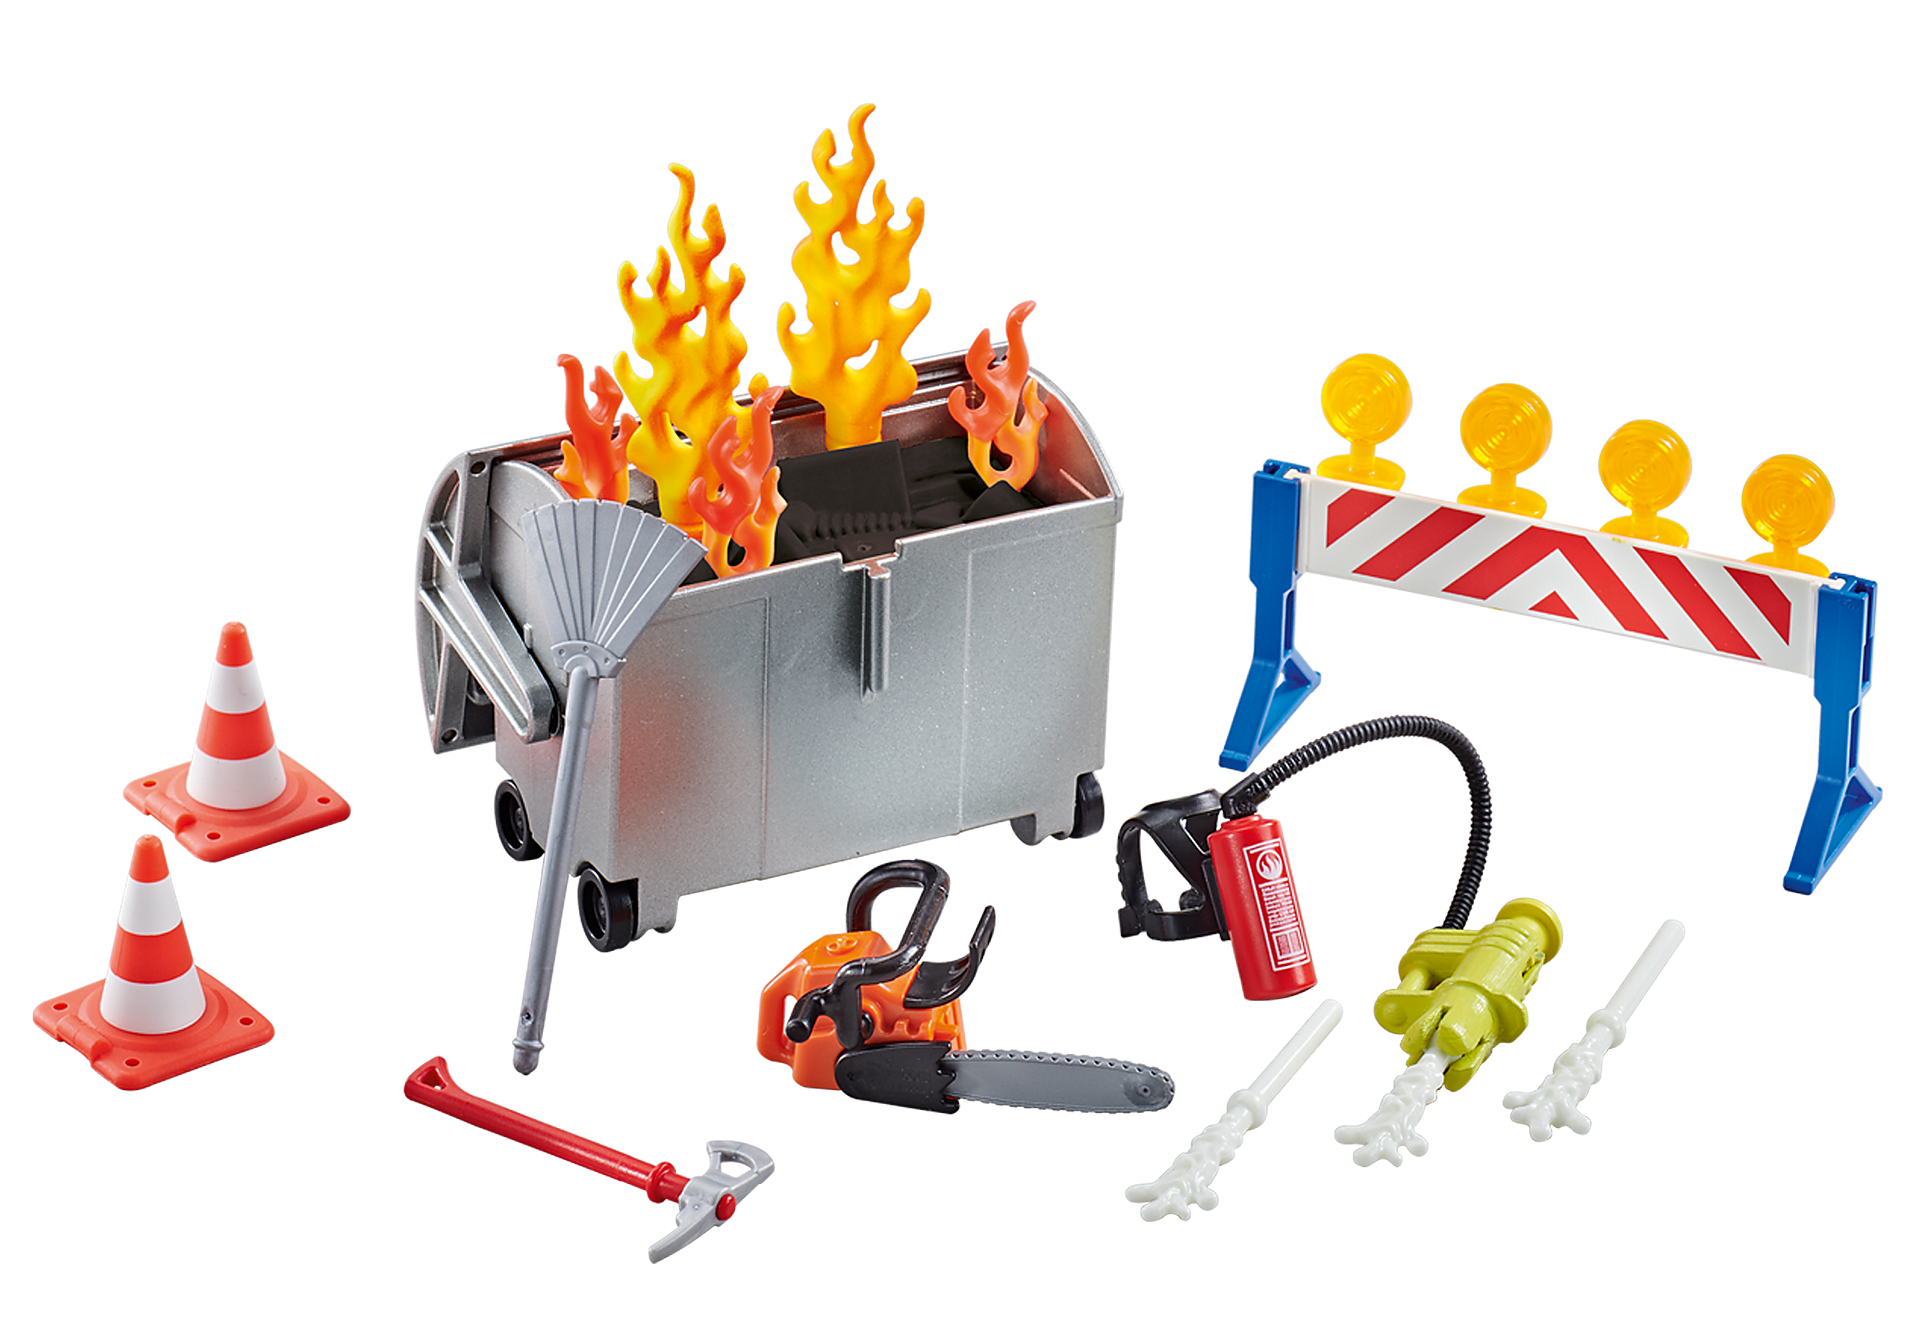 9804 Fire Brigade Accessories Set zoom image1